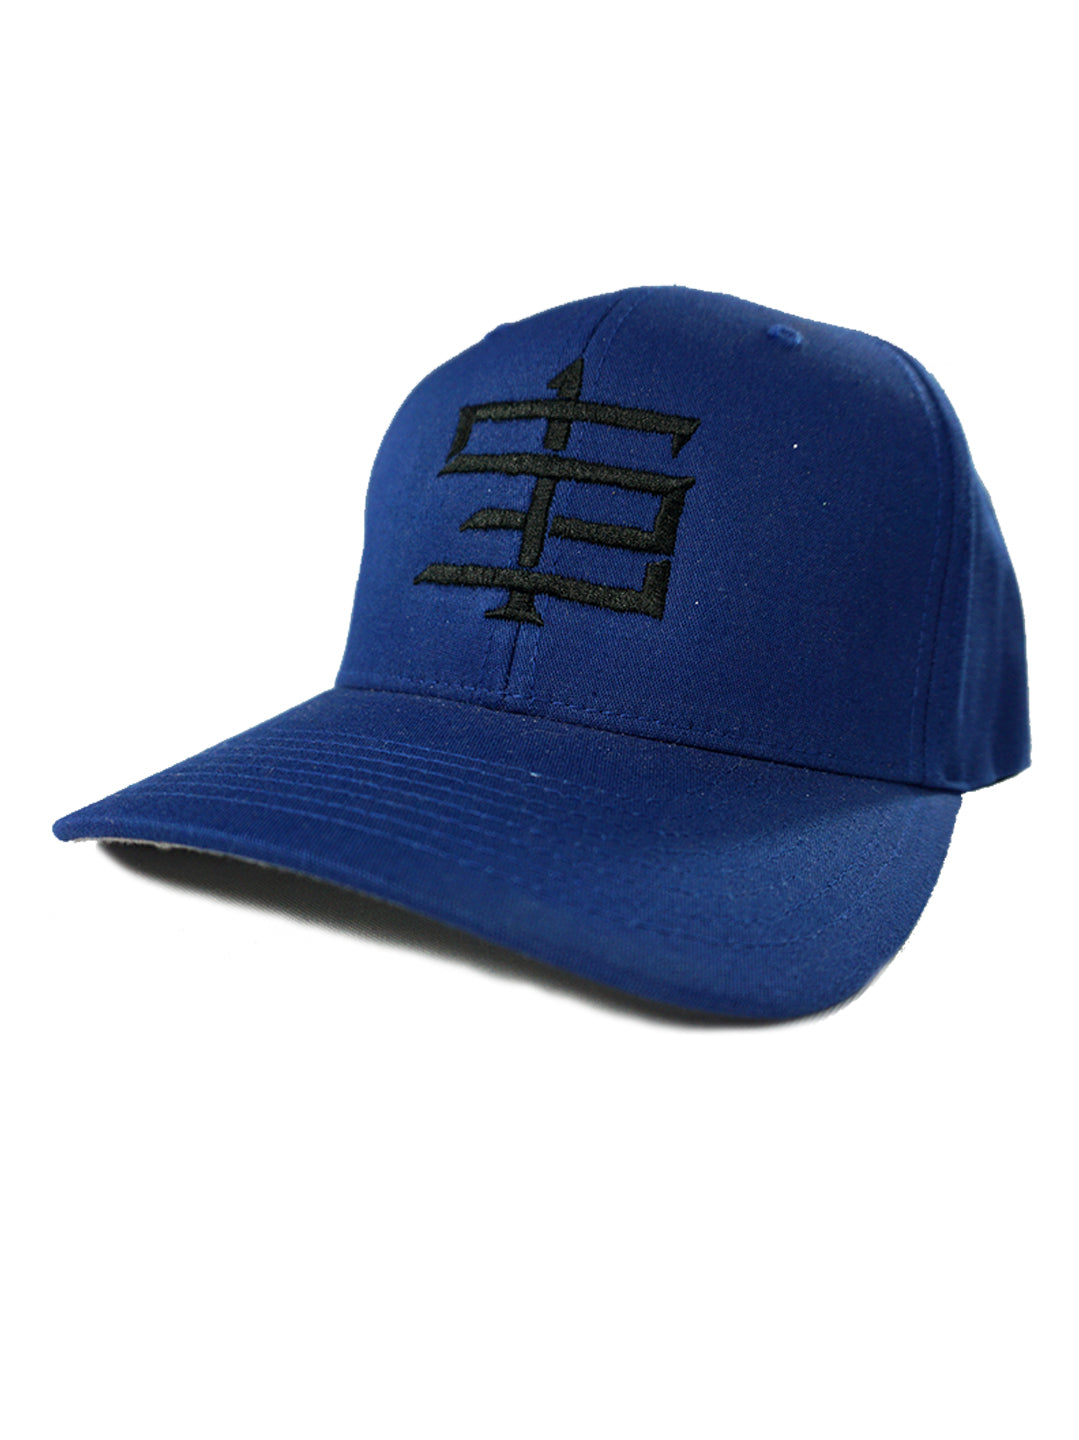 5/3/1 Monogram Hat - Blue/Black